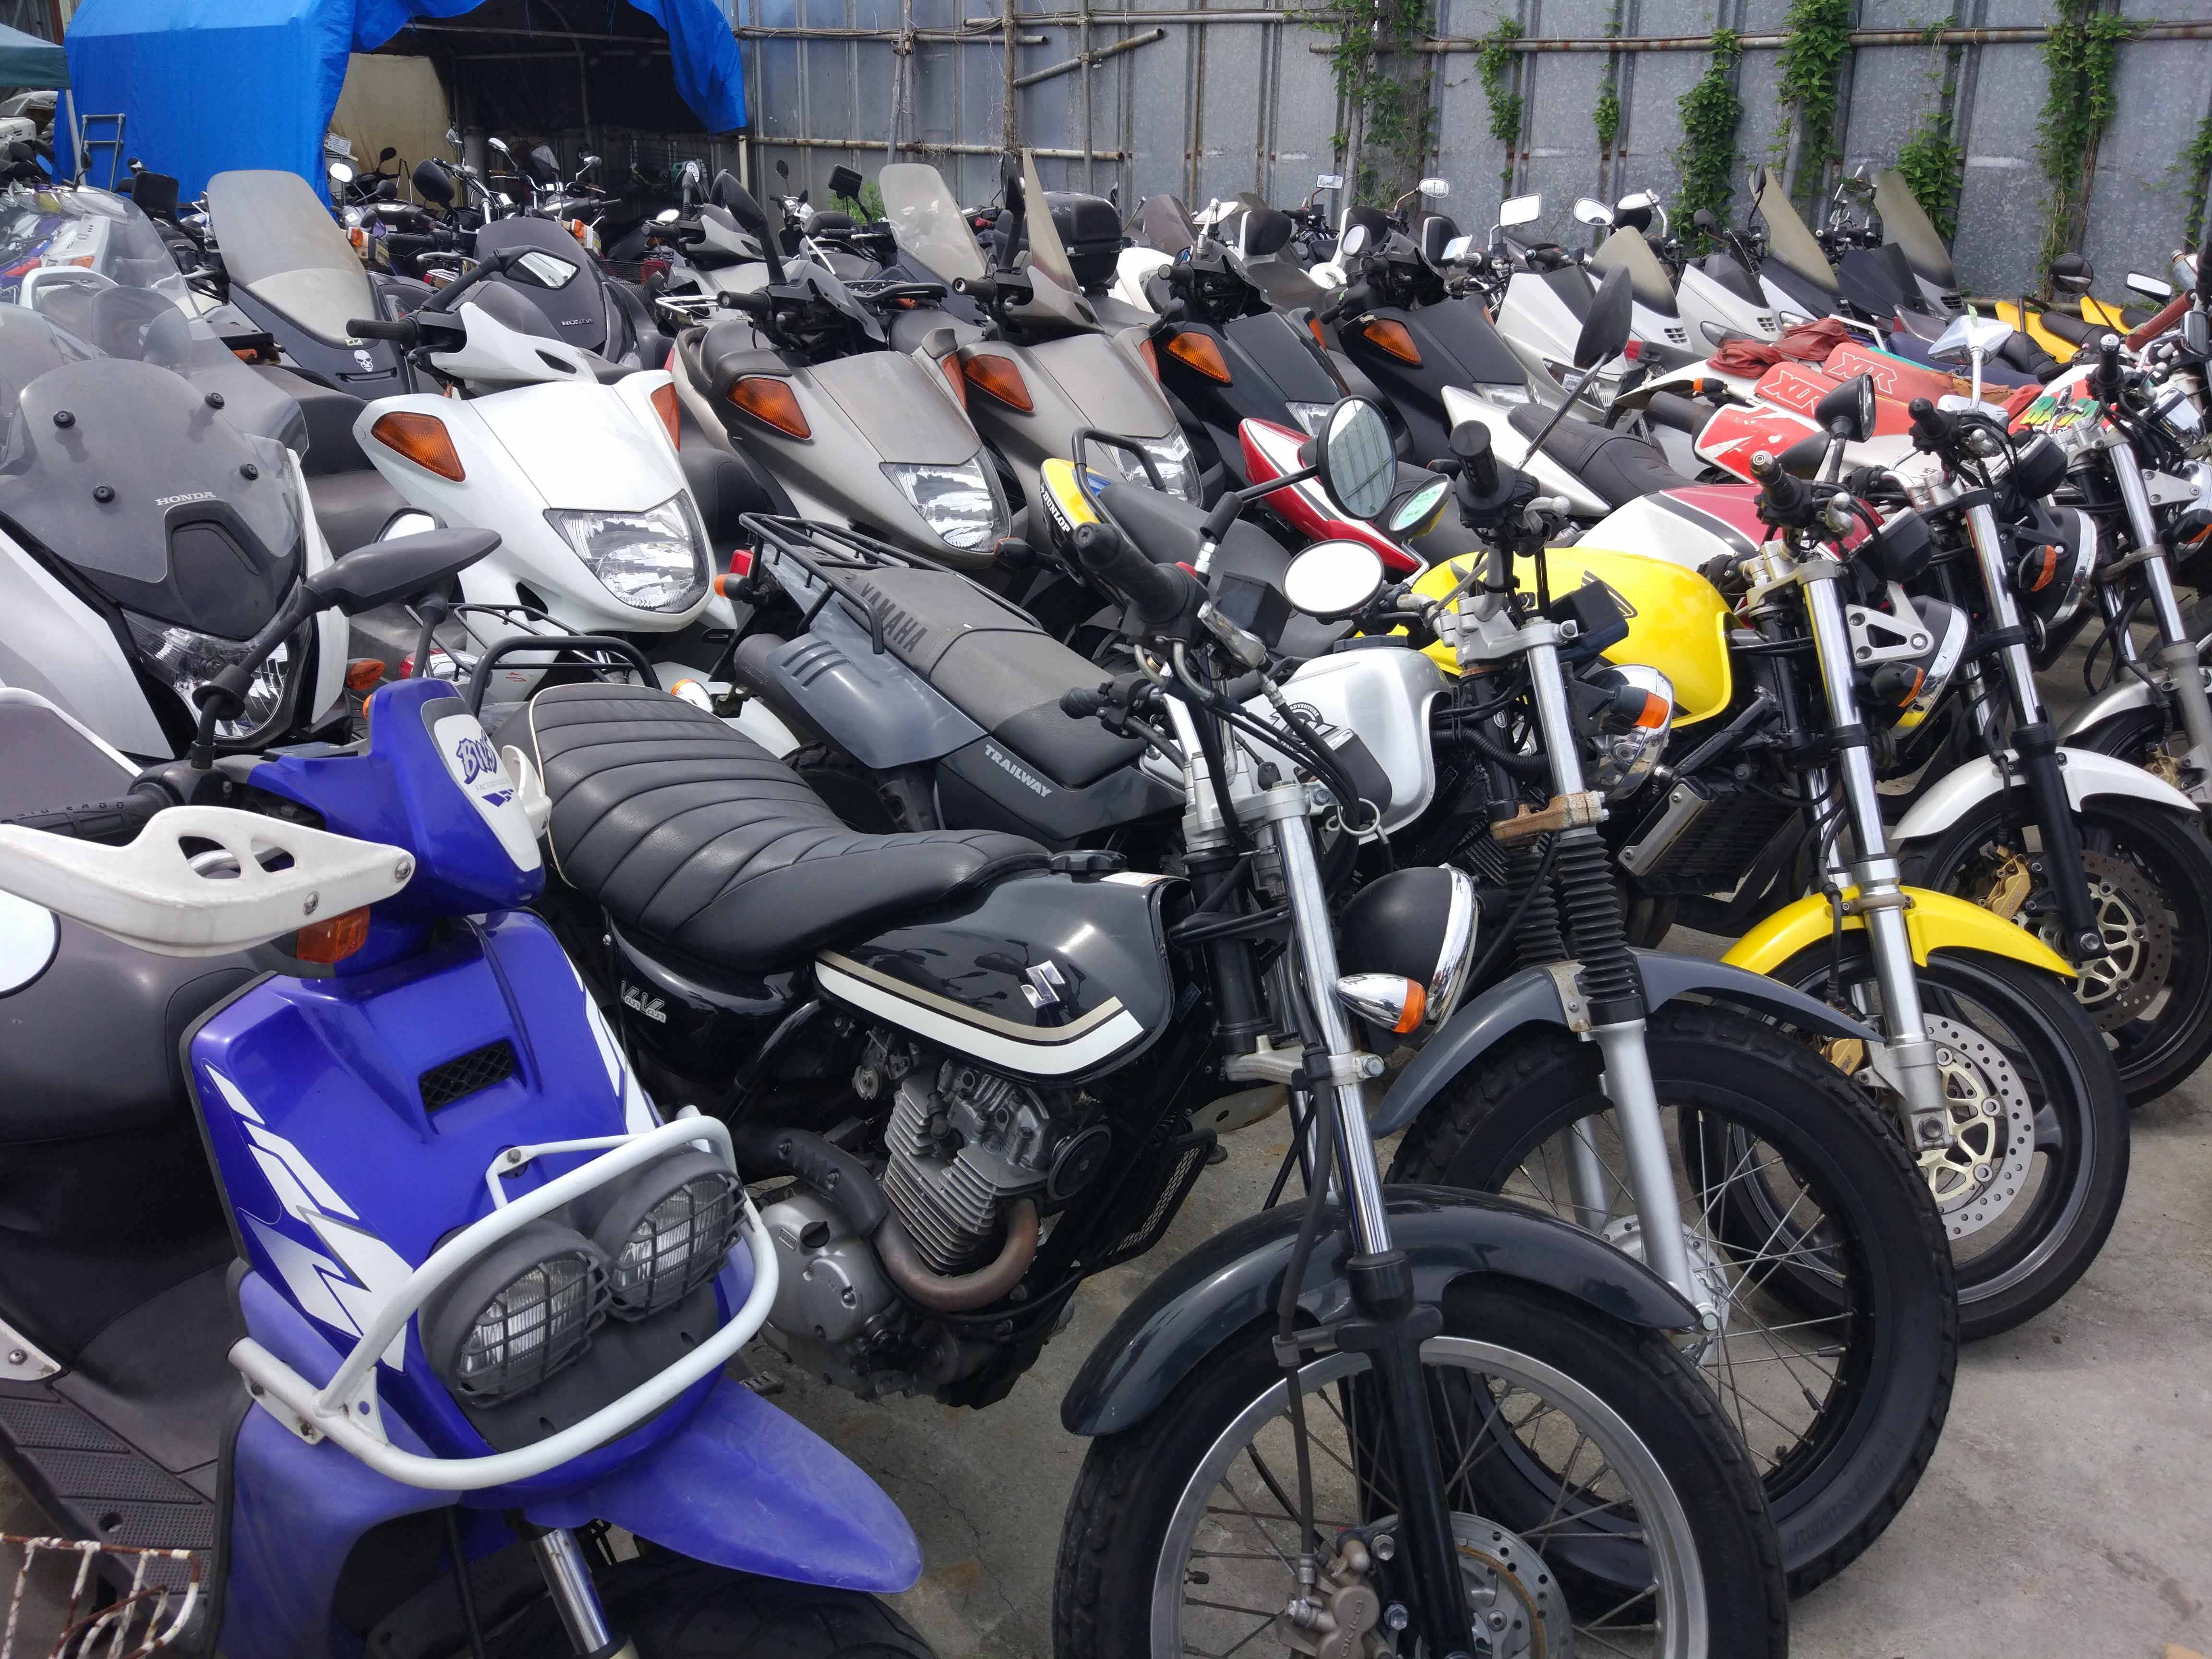 Shop Japanese Used Motorcycles With Autorabbit Co Ltd Today We Export All Kinds Of Motorcycles Scooters Maxi Scooters Used Motorcycles Used Bikes Motorcycle